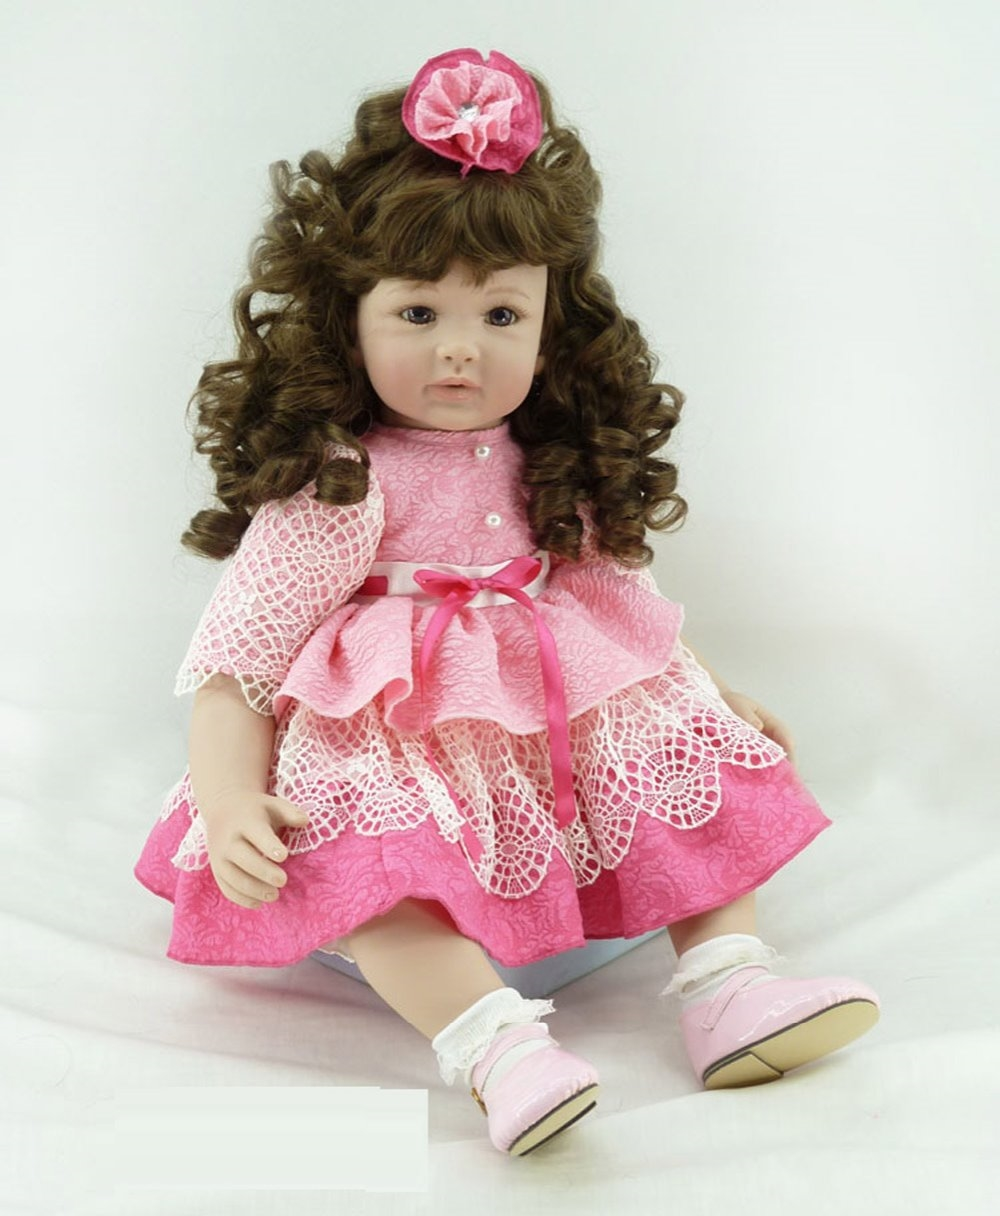 103.99$  Buy now - http://alir4e.worldwells.pw/go.php?t=32621136373 - 22 inch 55 cm Silicone baby reborn dolls, lifelike doll reborn babies toys Pretty girl with curly hair